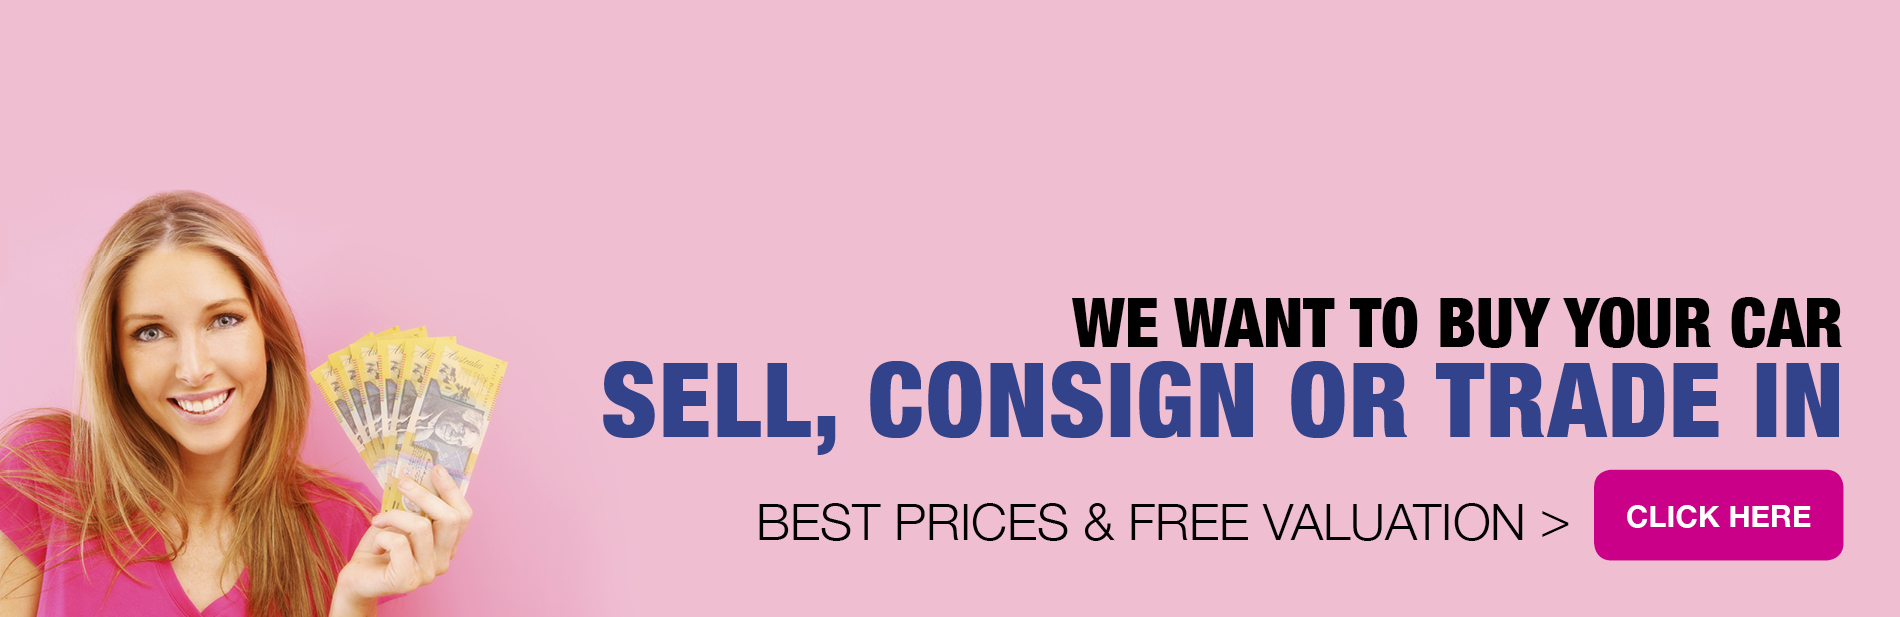 Sell, Consign or Trade in your vehicle today!